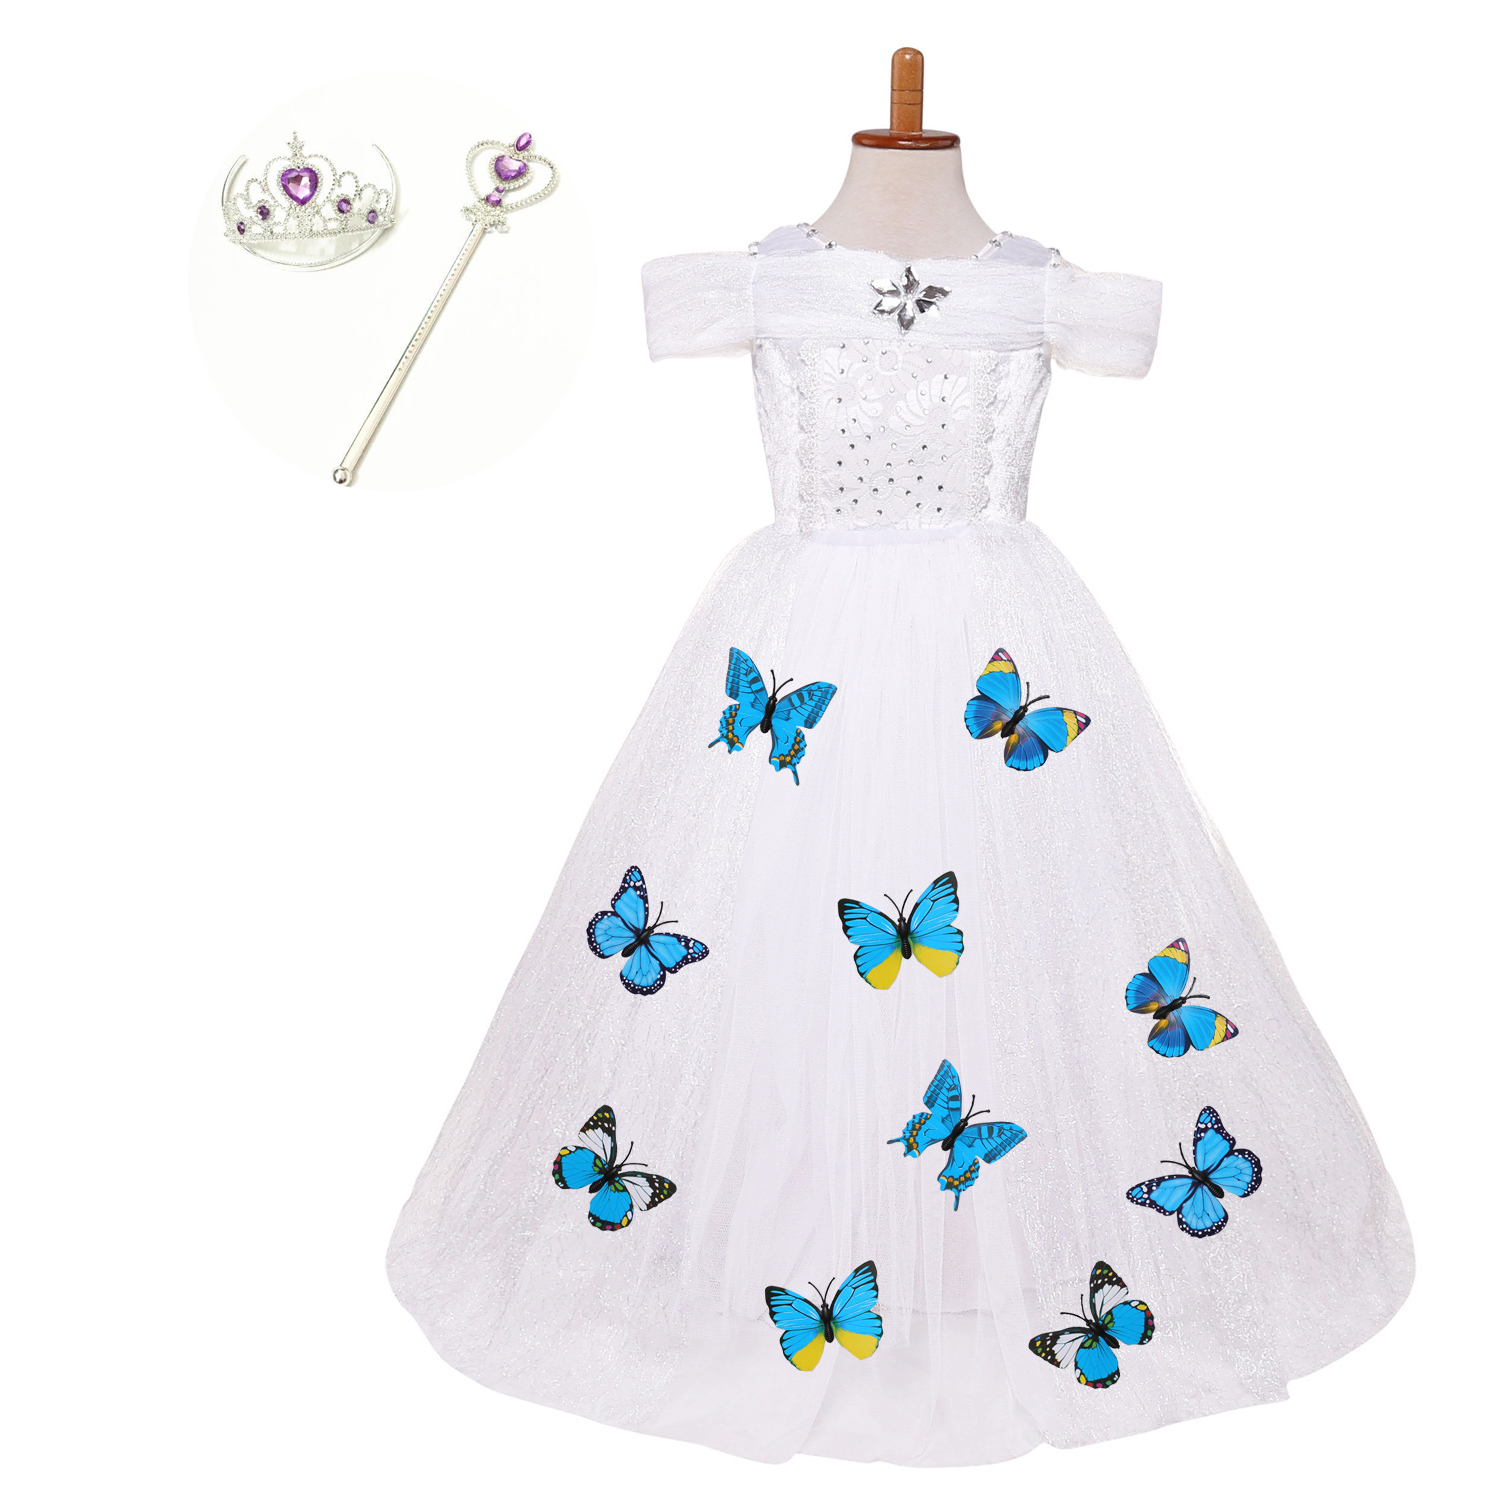 Toddler Birthday Party Dresses Christmas Carnival Costumes for Children Kids Fancy White Dress with Butterflies Clothes Set trendy kids costumes girl maid cosplay fancy dress stage performance clothes children fantasia carnival costumes